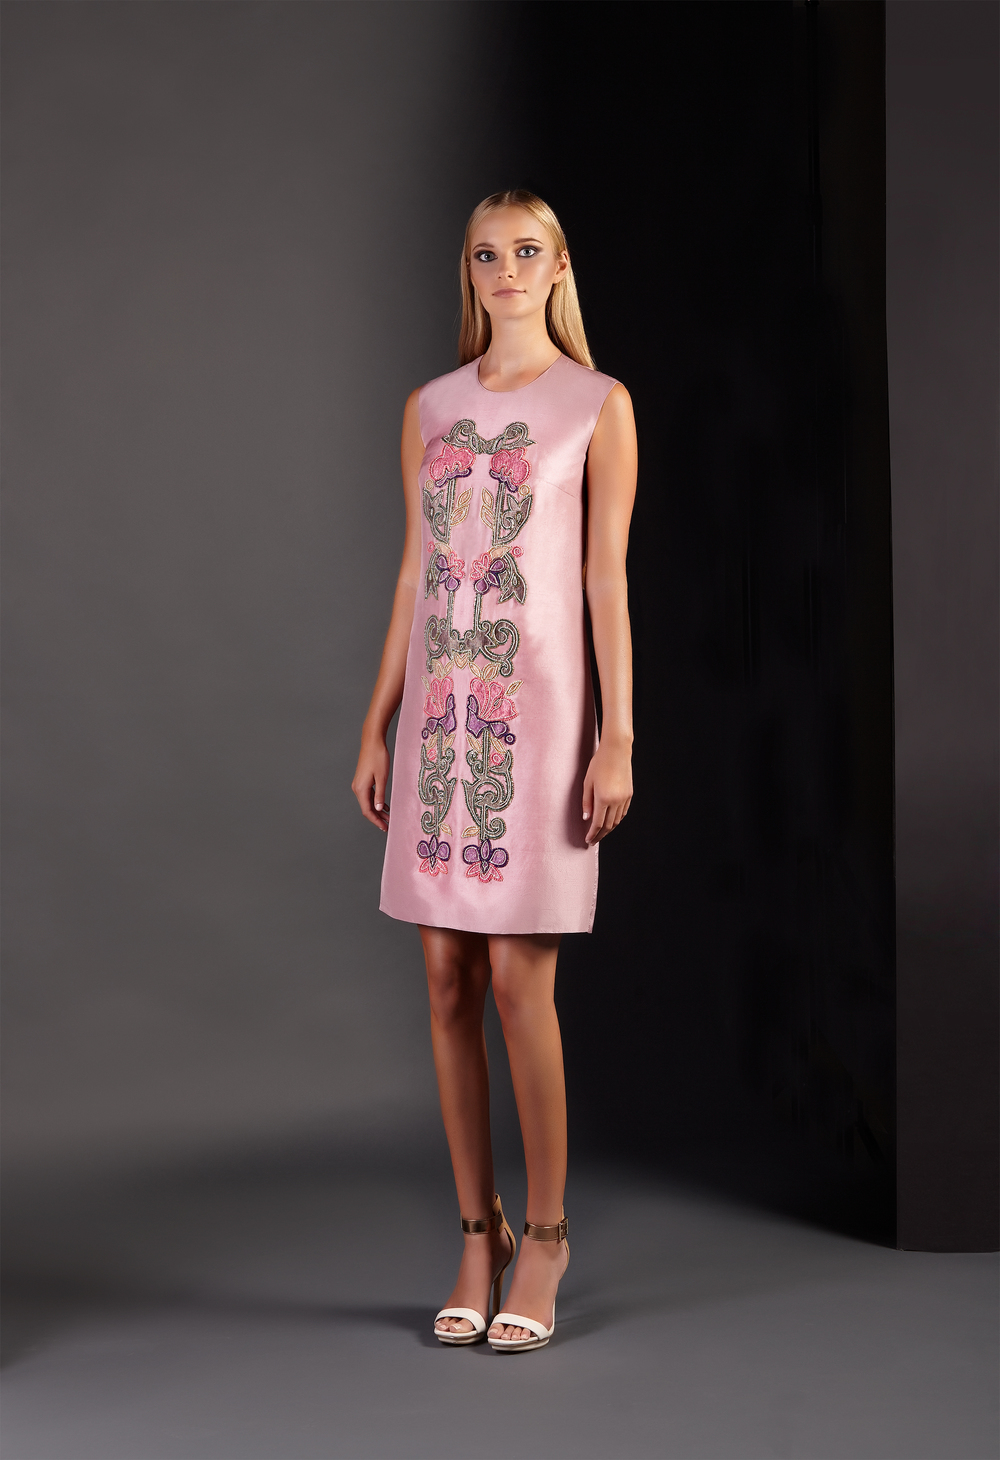 Floral_Embellished_Shift_Dress3.jpg